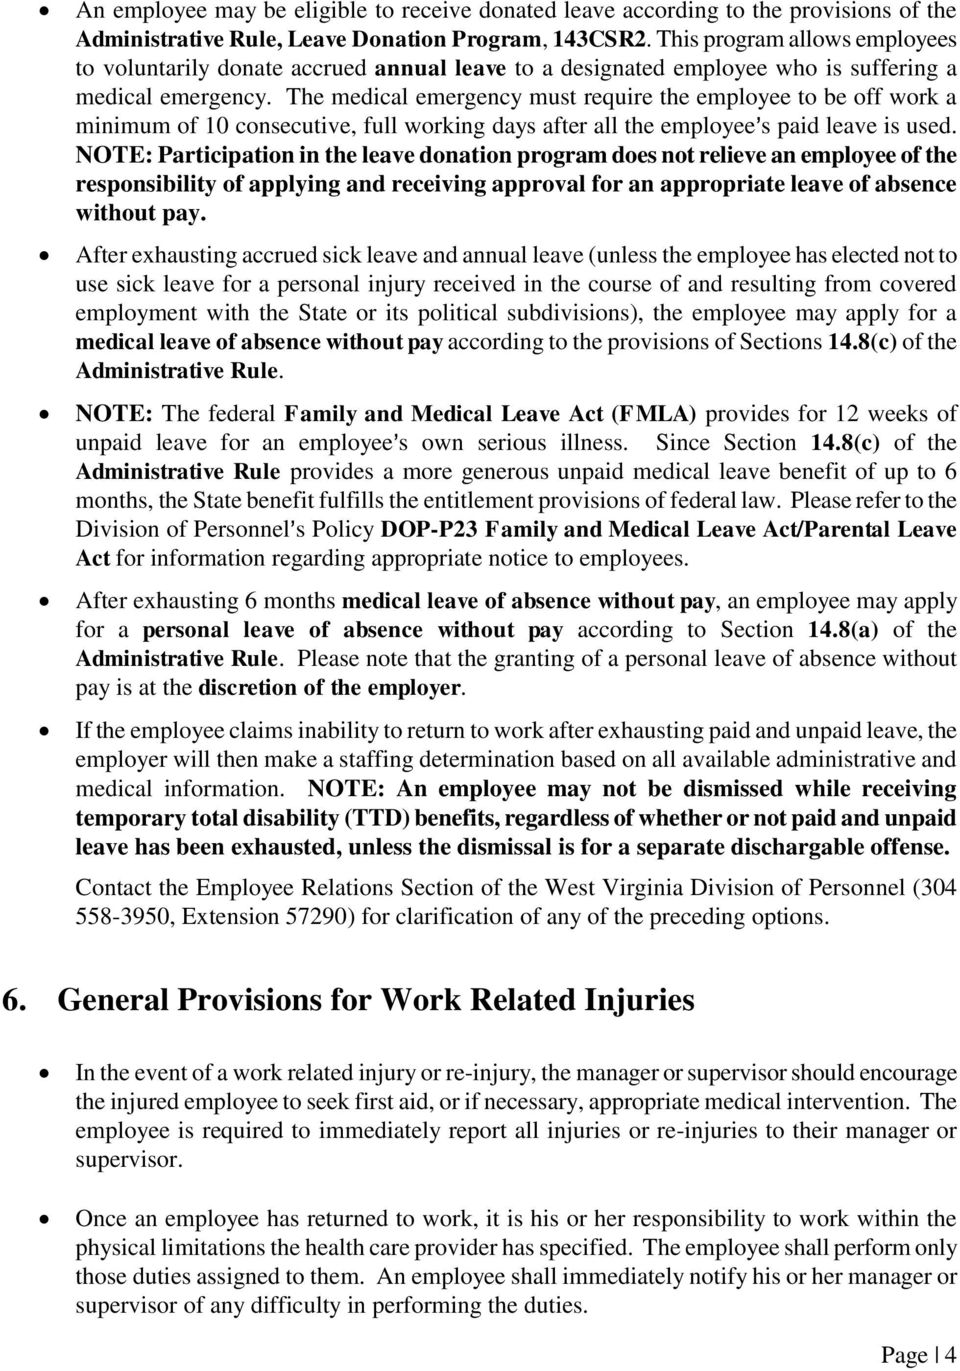 The medical emergency must require the employee to be off work a minimum of 10 consecutive, full working days after all the employee=s paid leave is used.